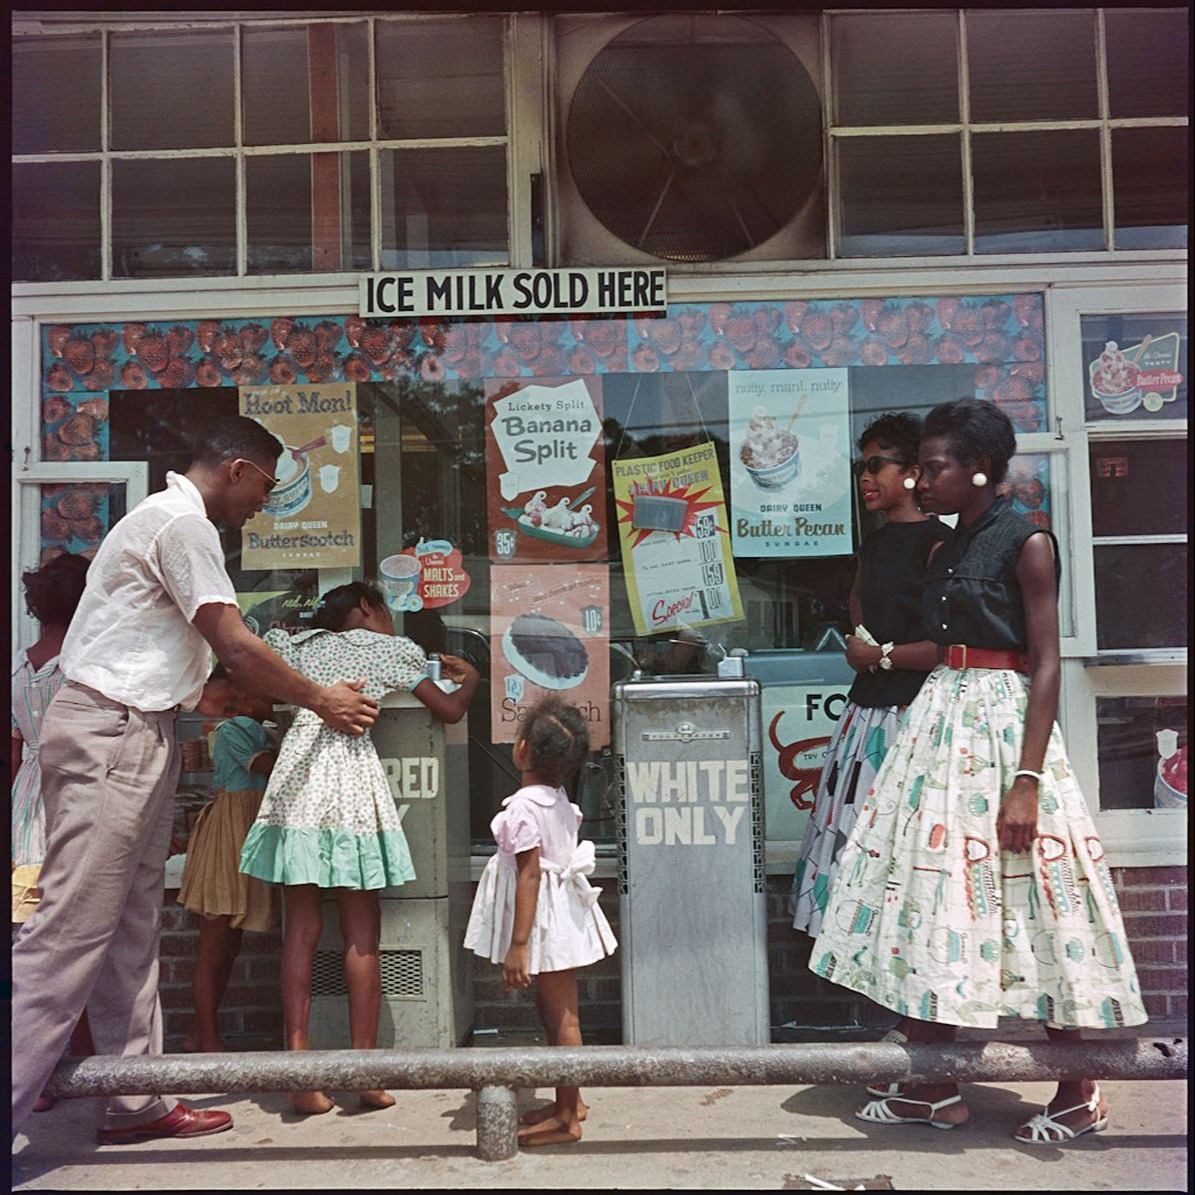 Gordon Parks, Segregation in the South, 1956